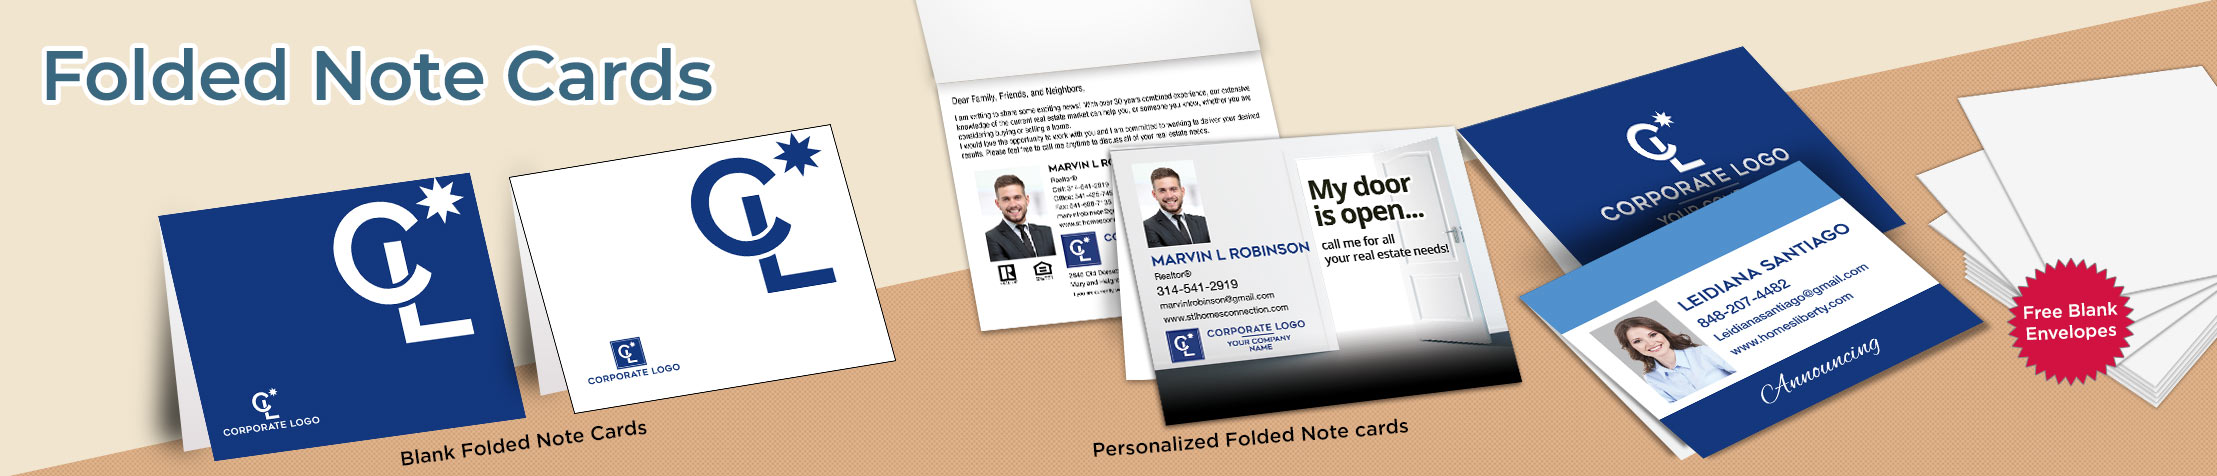 Coldwell Banker Real Estate Folded Note Cards - Coldwell Banker stationery | BestPrintBuy.com